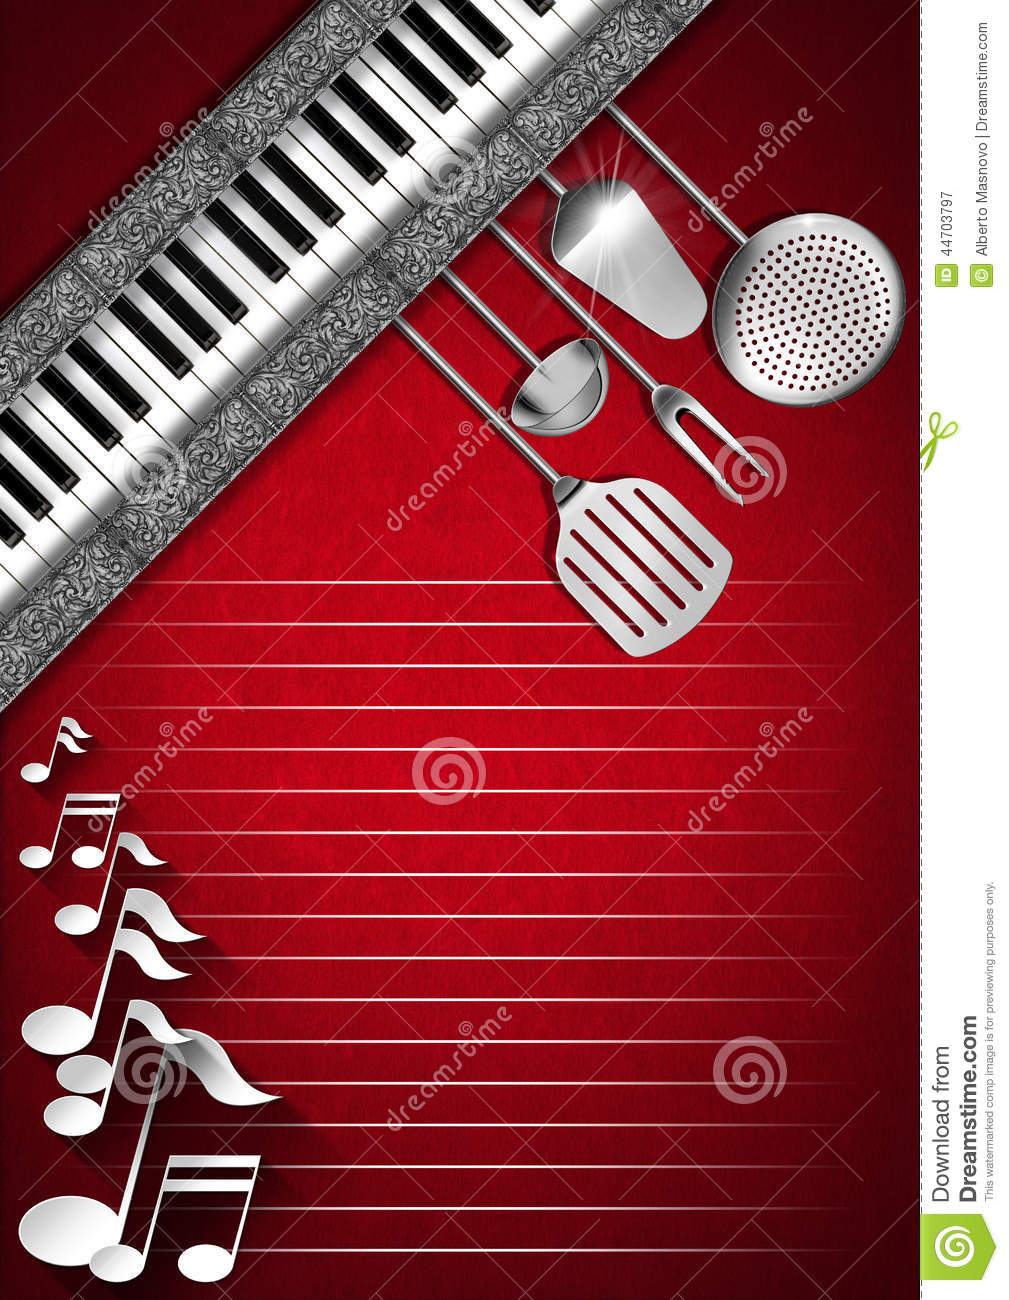 music and food - menu design stock illustration